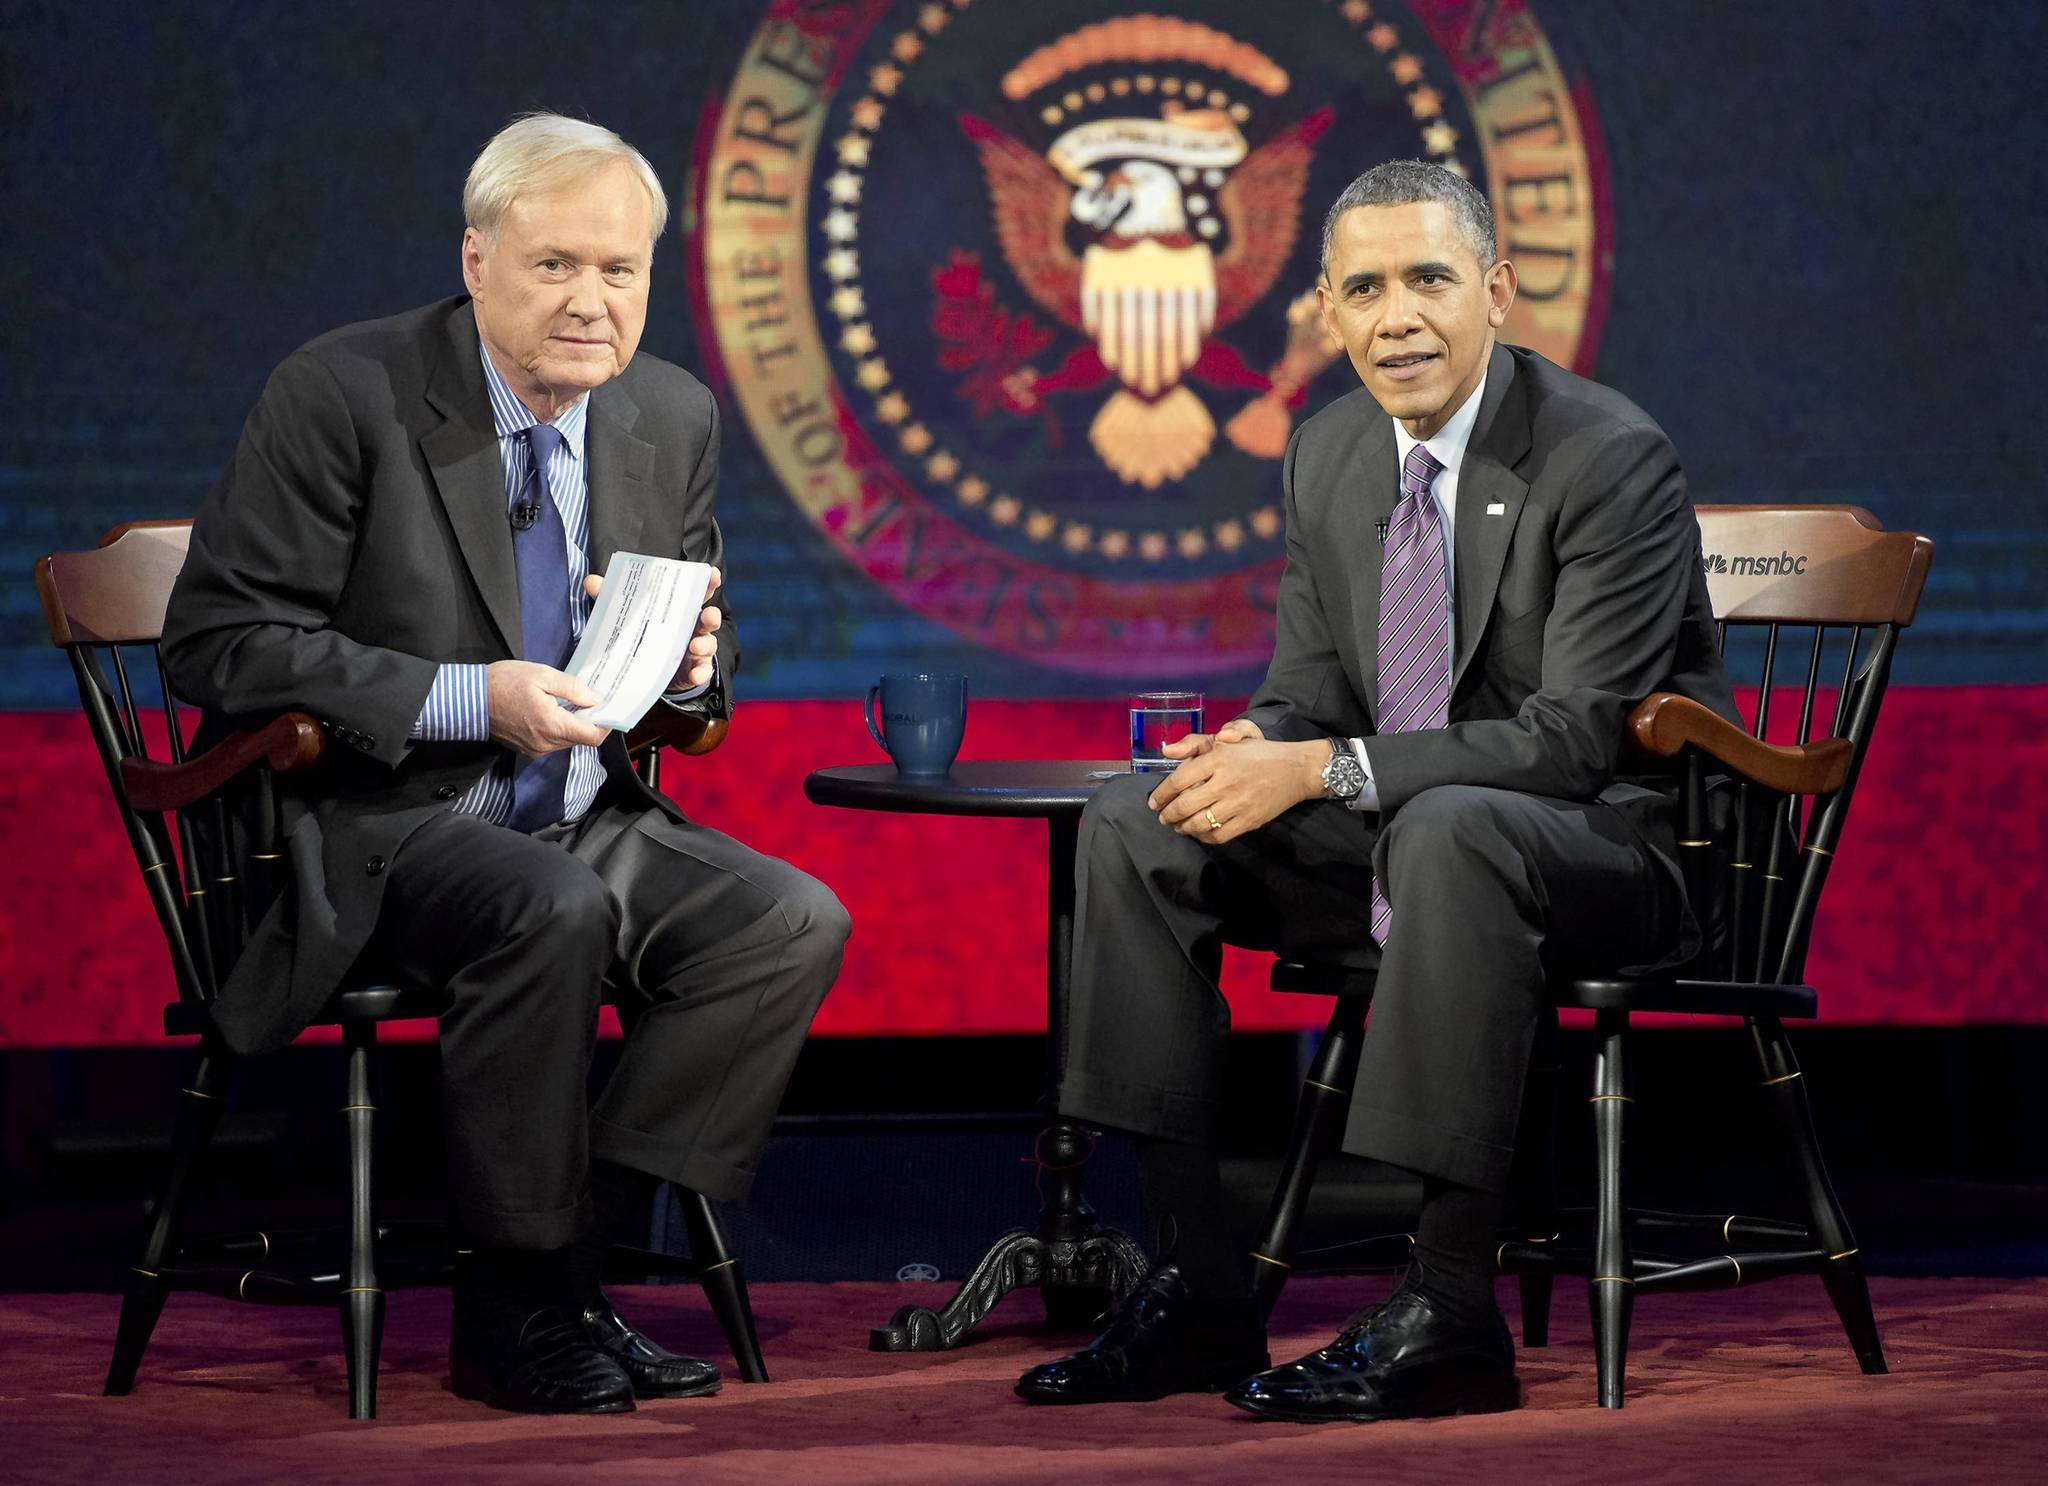 President Barack Obama was interviewed by MSNBC's Chris Matthews at American University earlier this month.